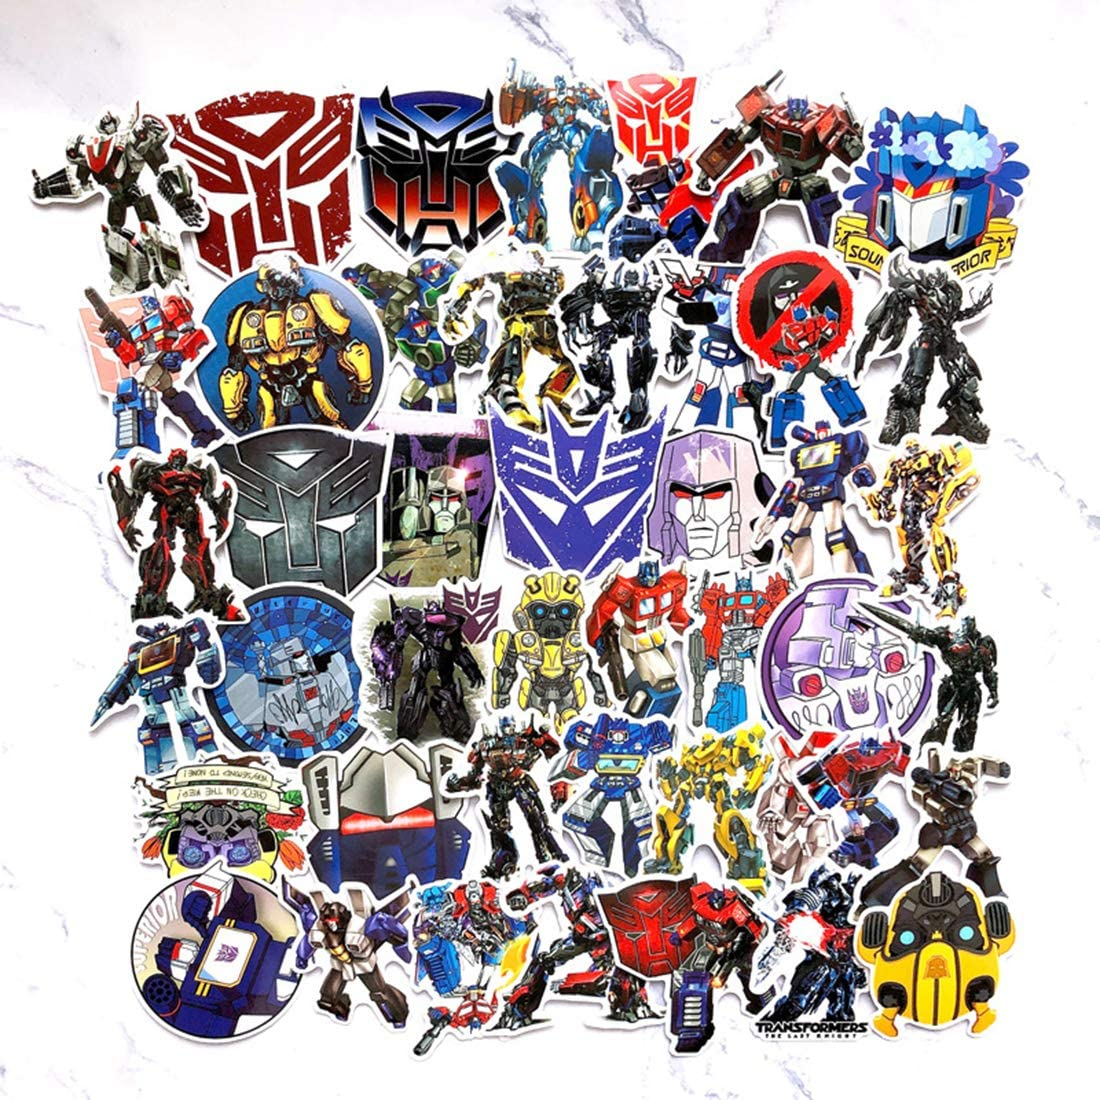 50Pcs Transformers Waterproof Stickers for Laptops Books Cars Motorcycles Skateboards Bicycles Suitcases Skis Luggage Hydro Flasks etc BWJ